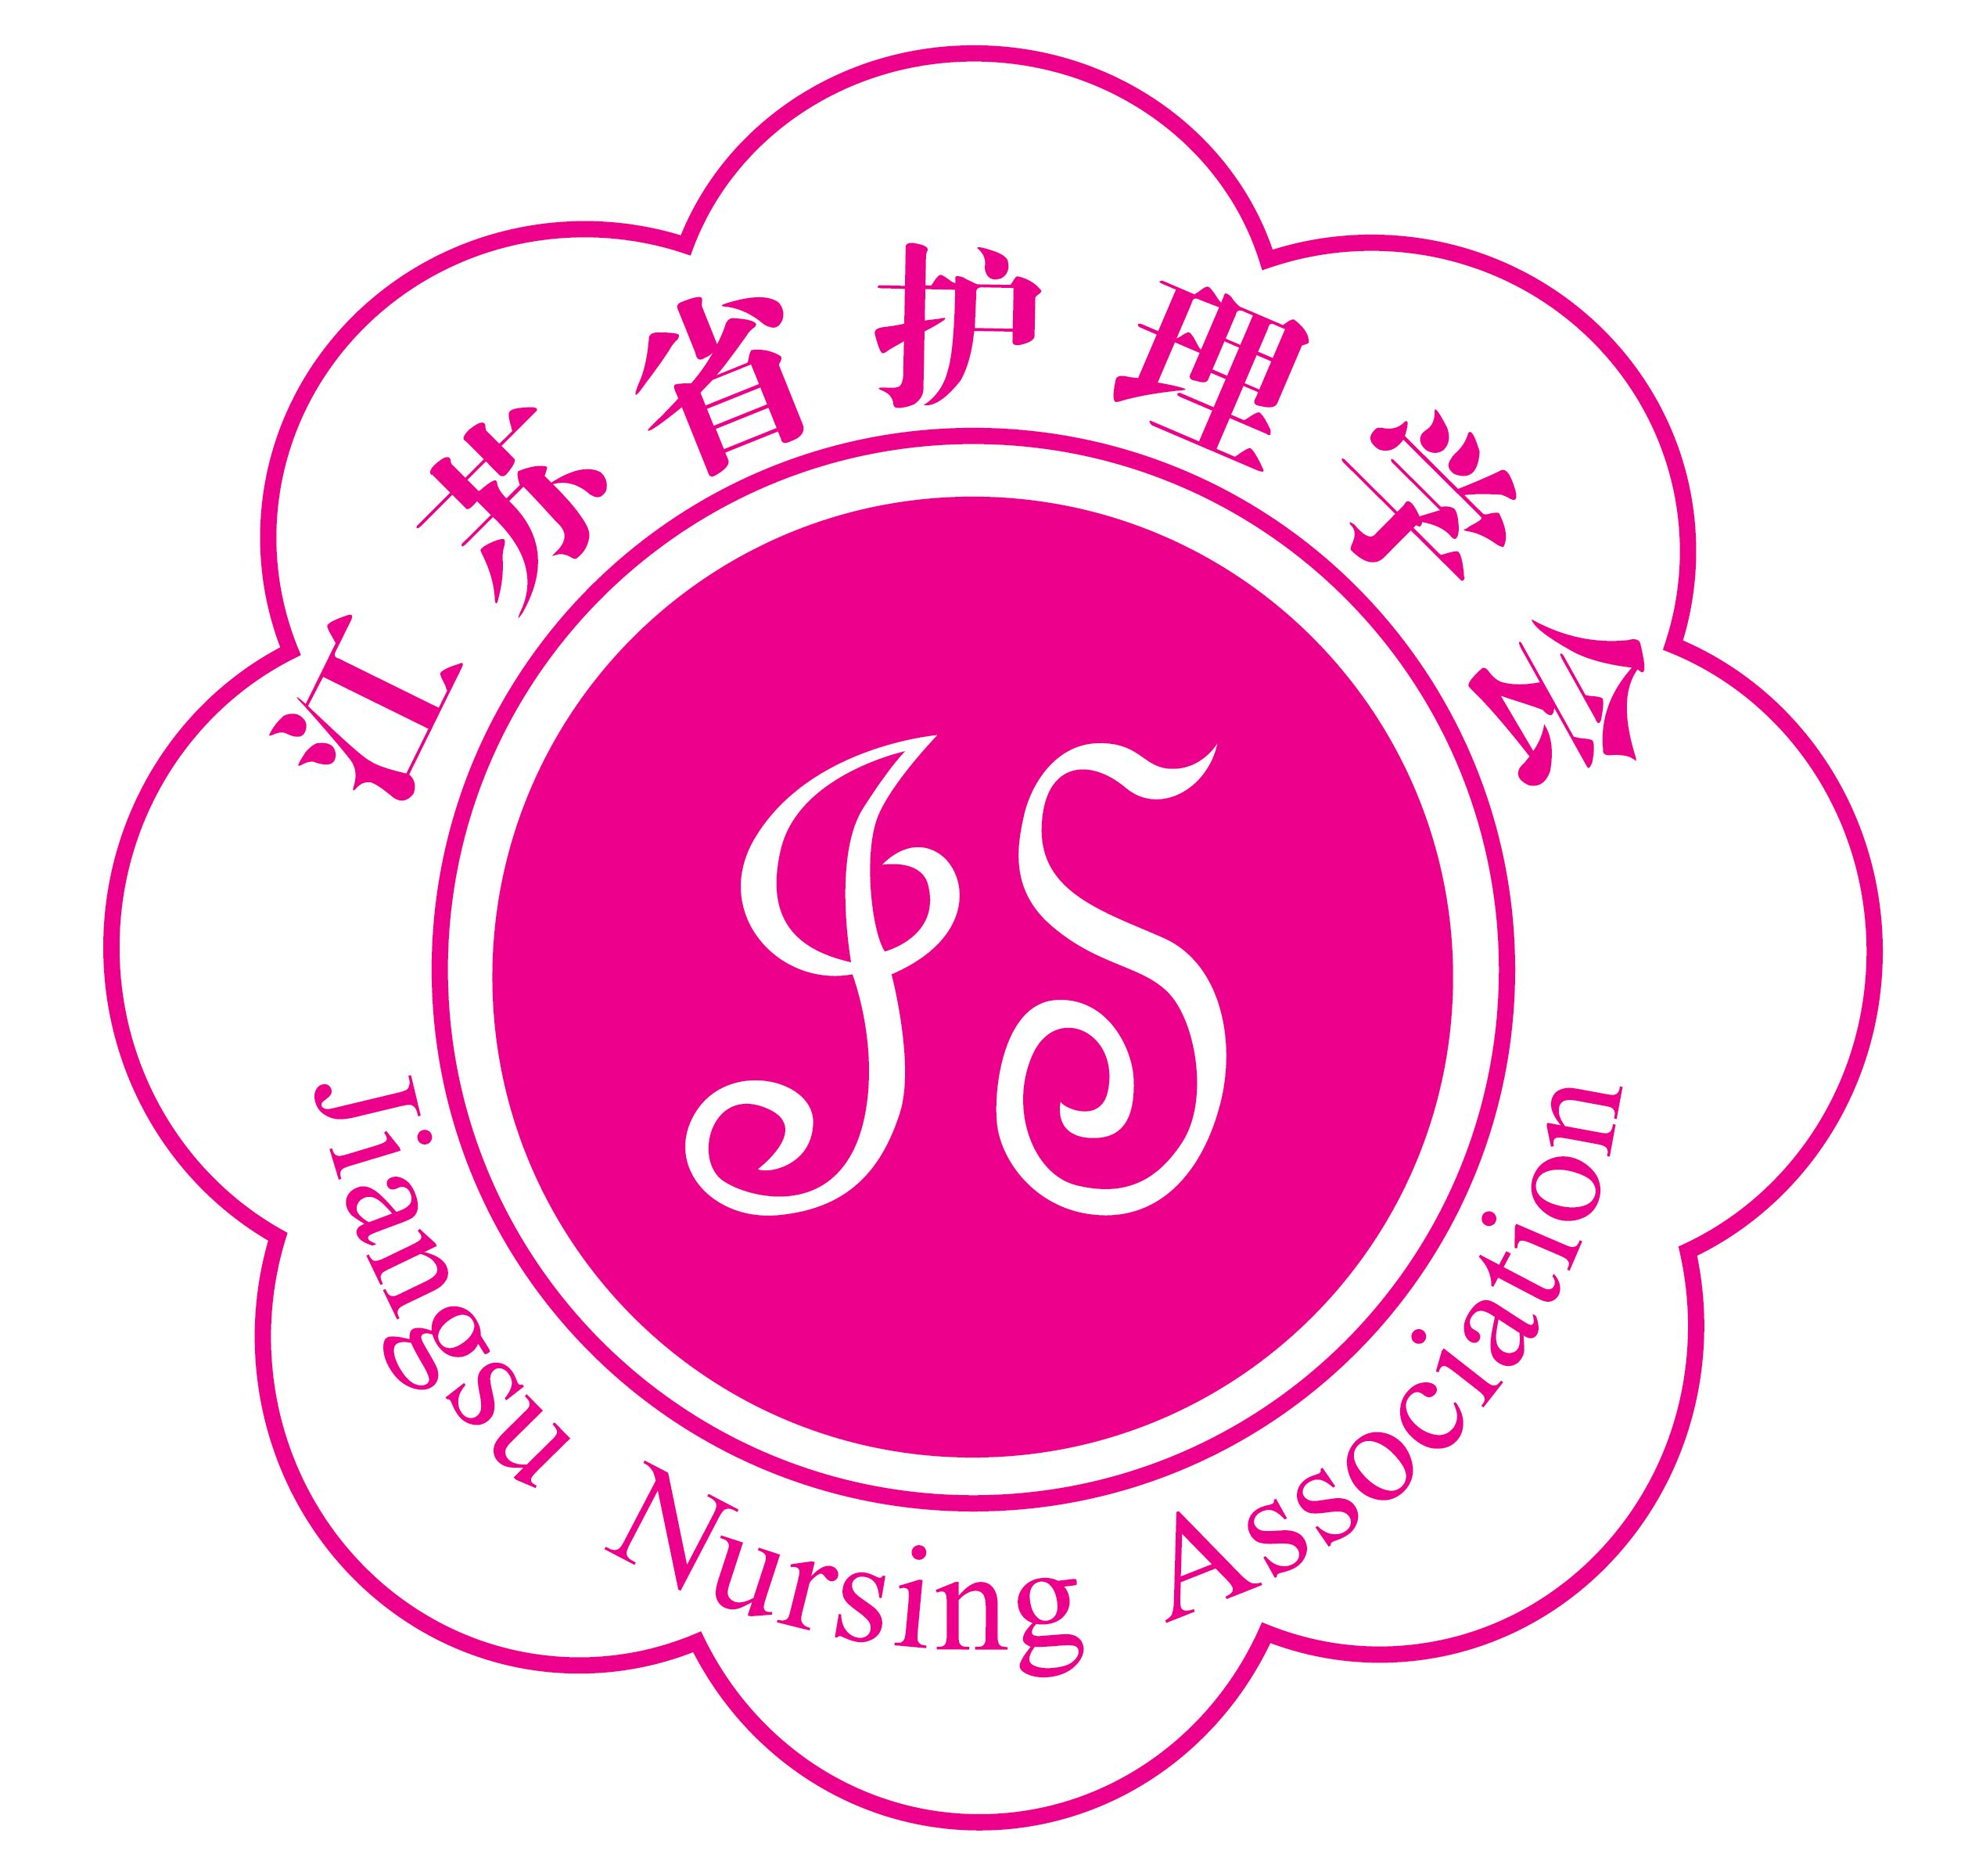 Logo_of_Jiangsu_Nursing_Association.jpg